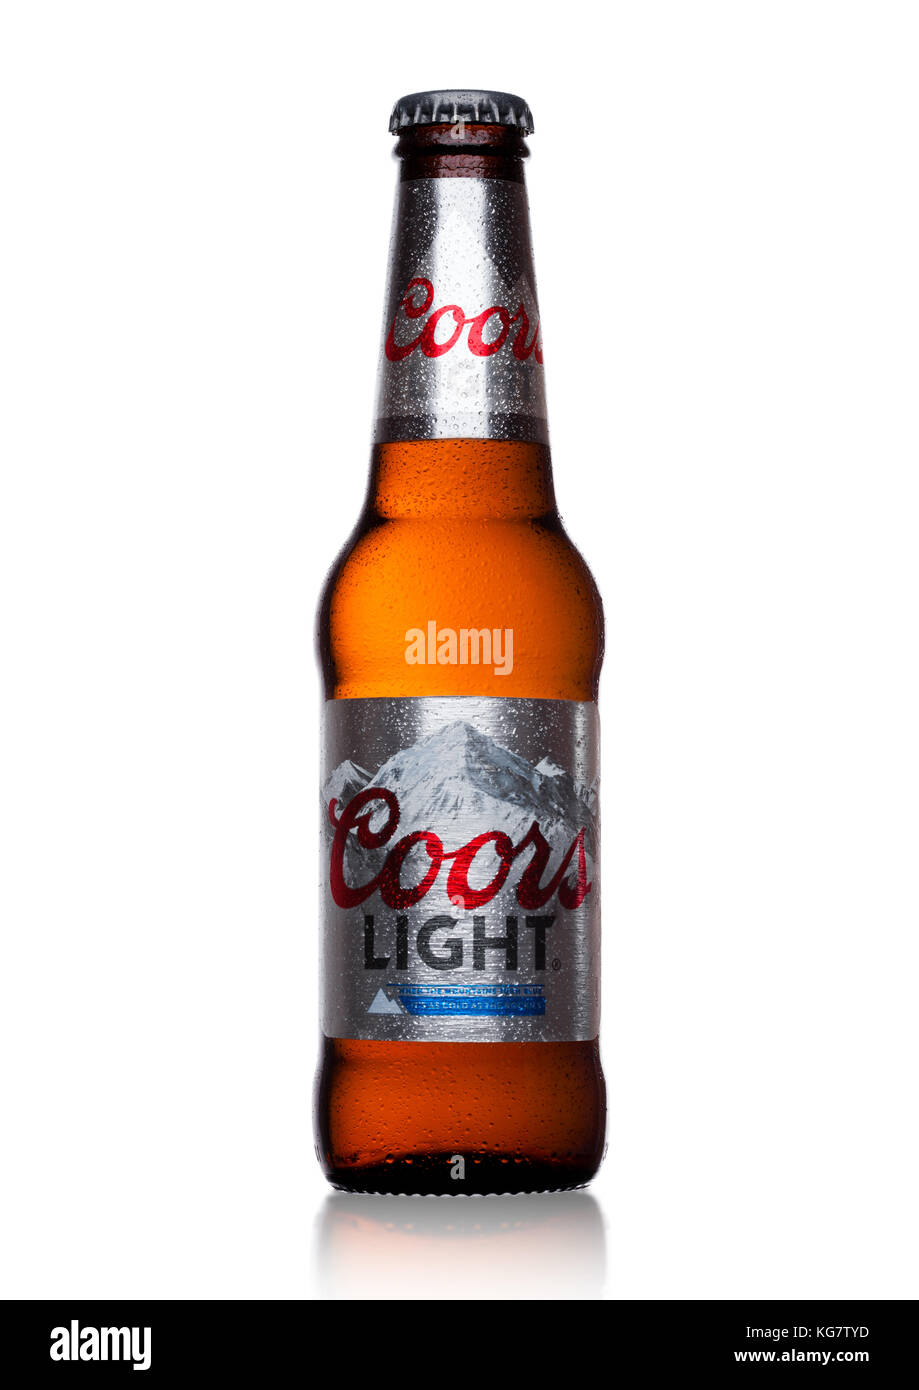 Coors Light Stock Photos & Coors Light Stock Images - Alamy